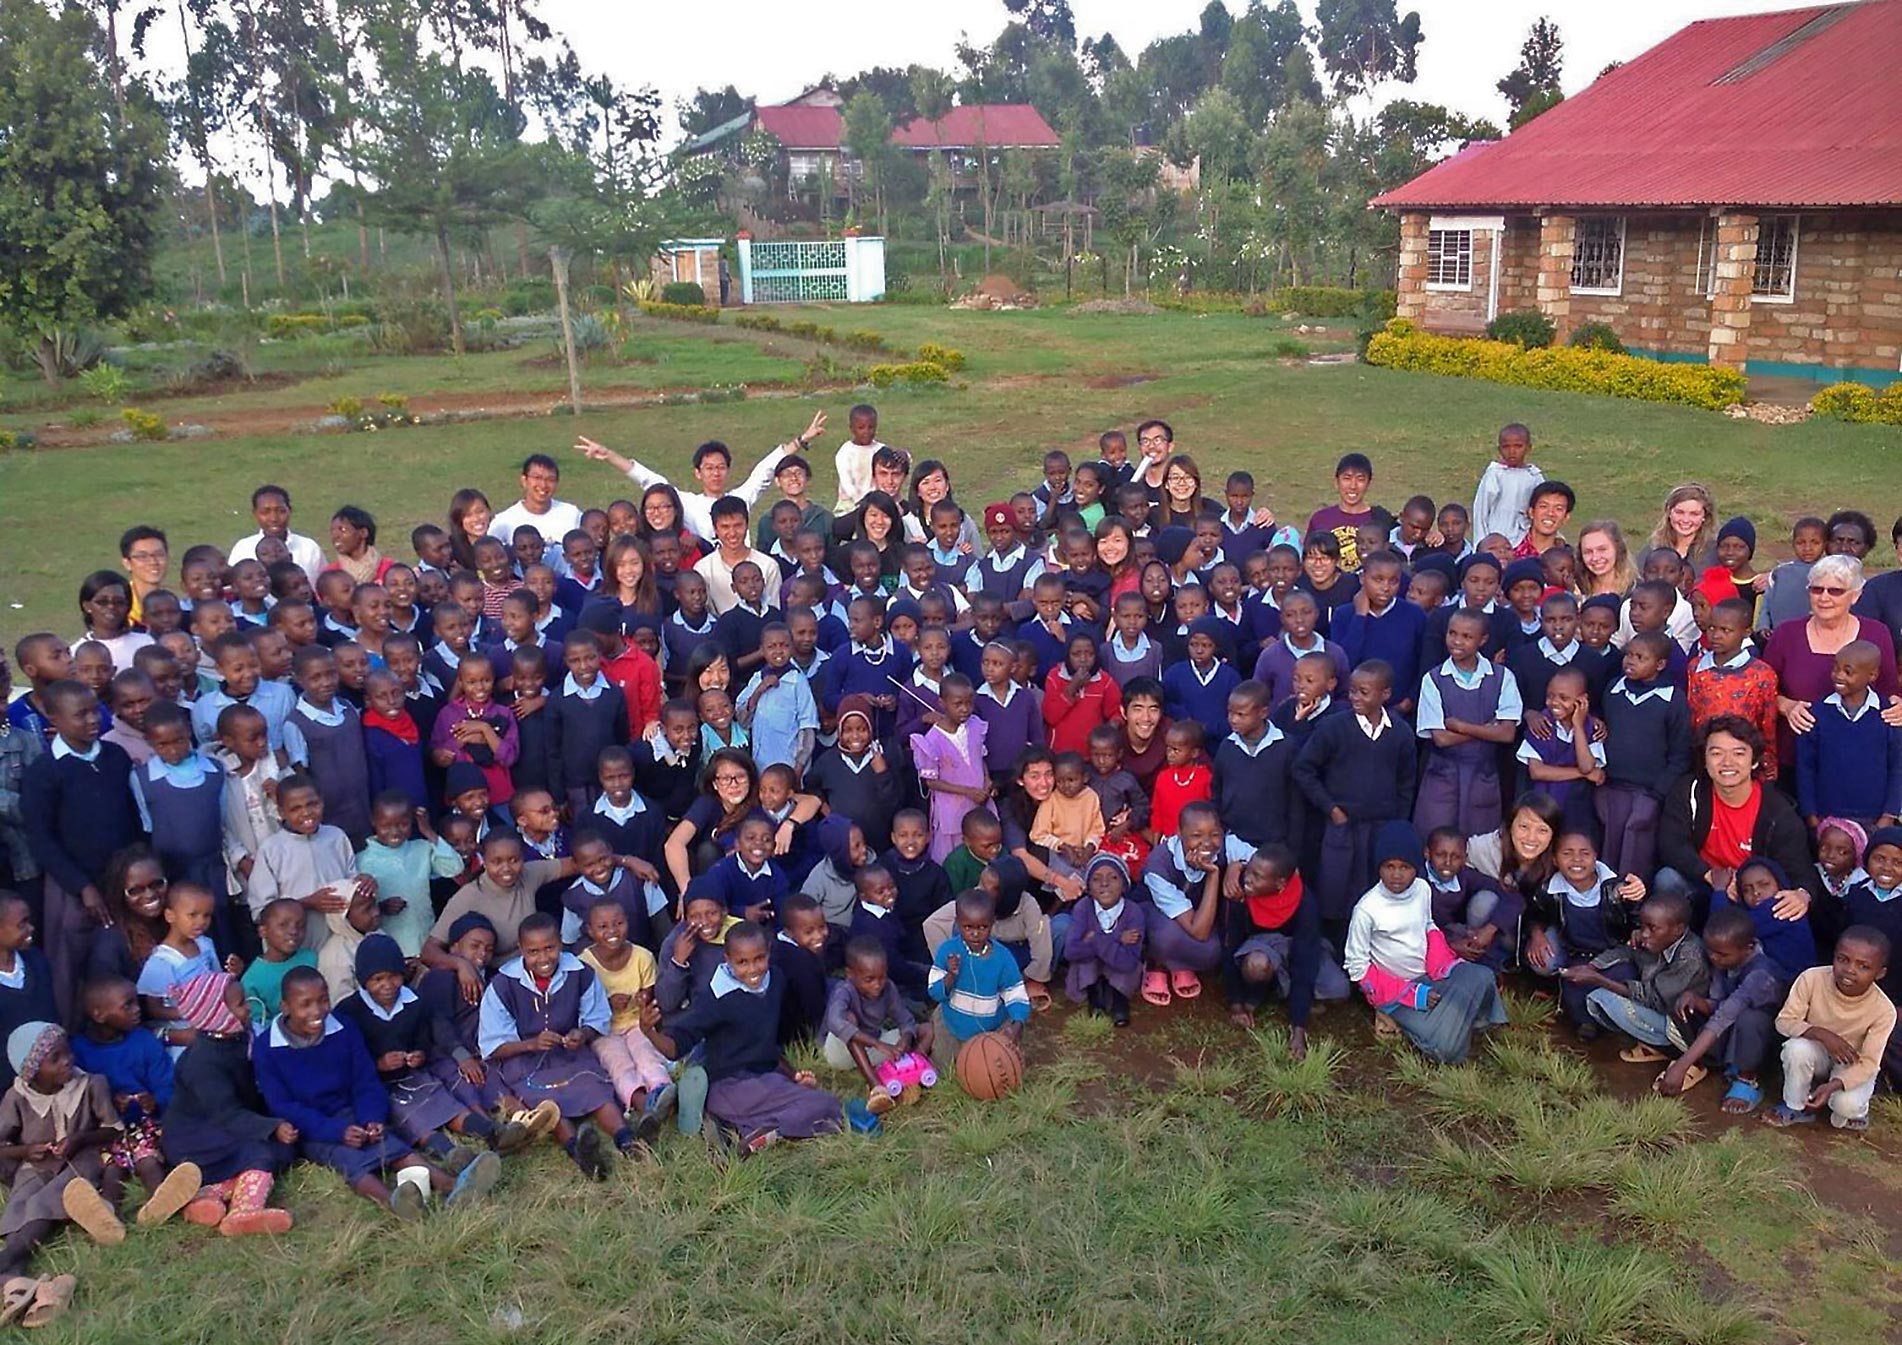 Our Lady of Grace Children's Home & School - students and volunteers